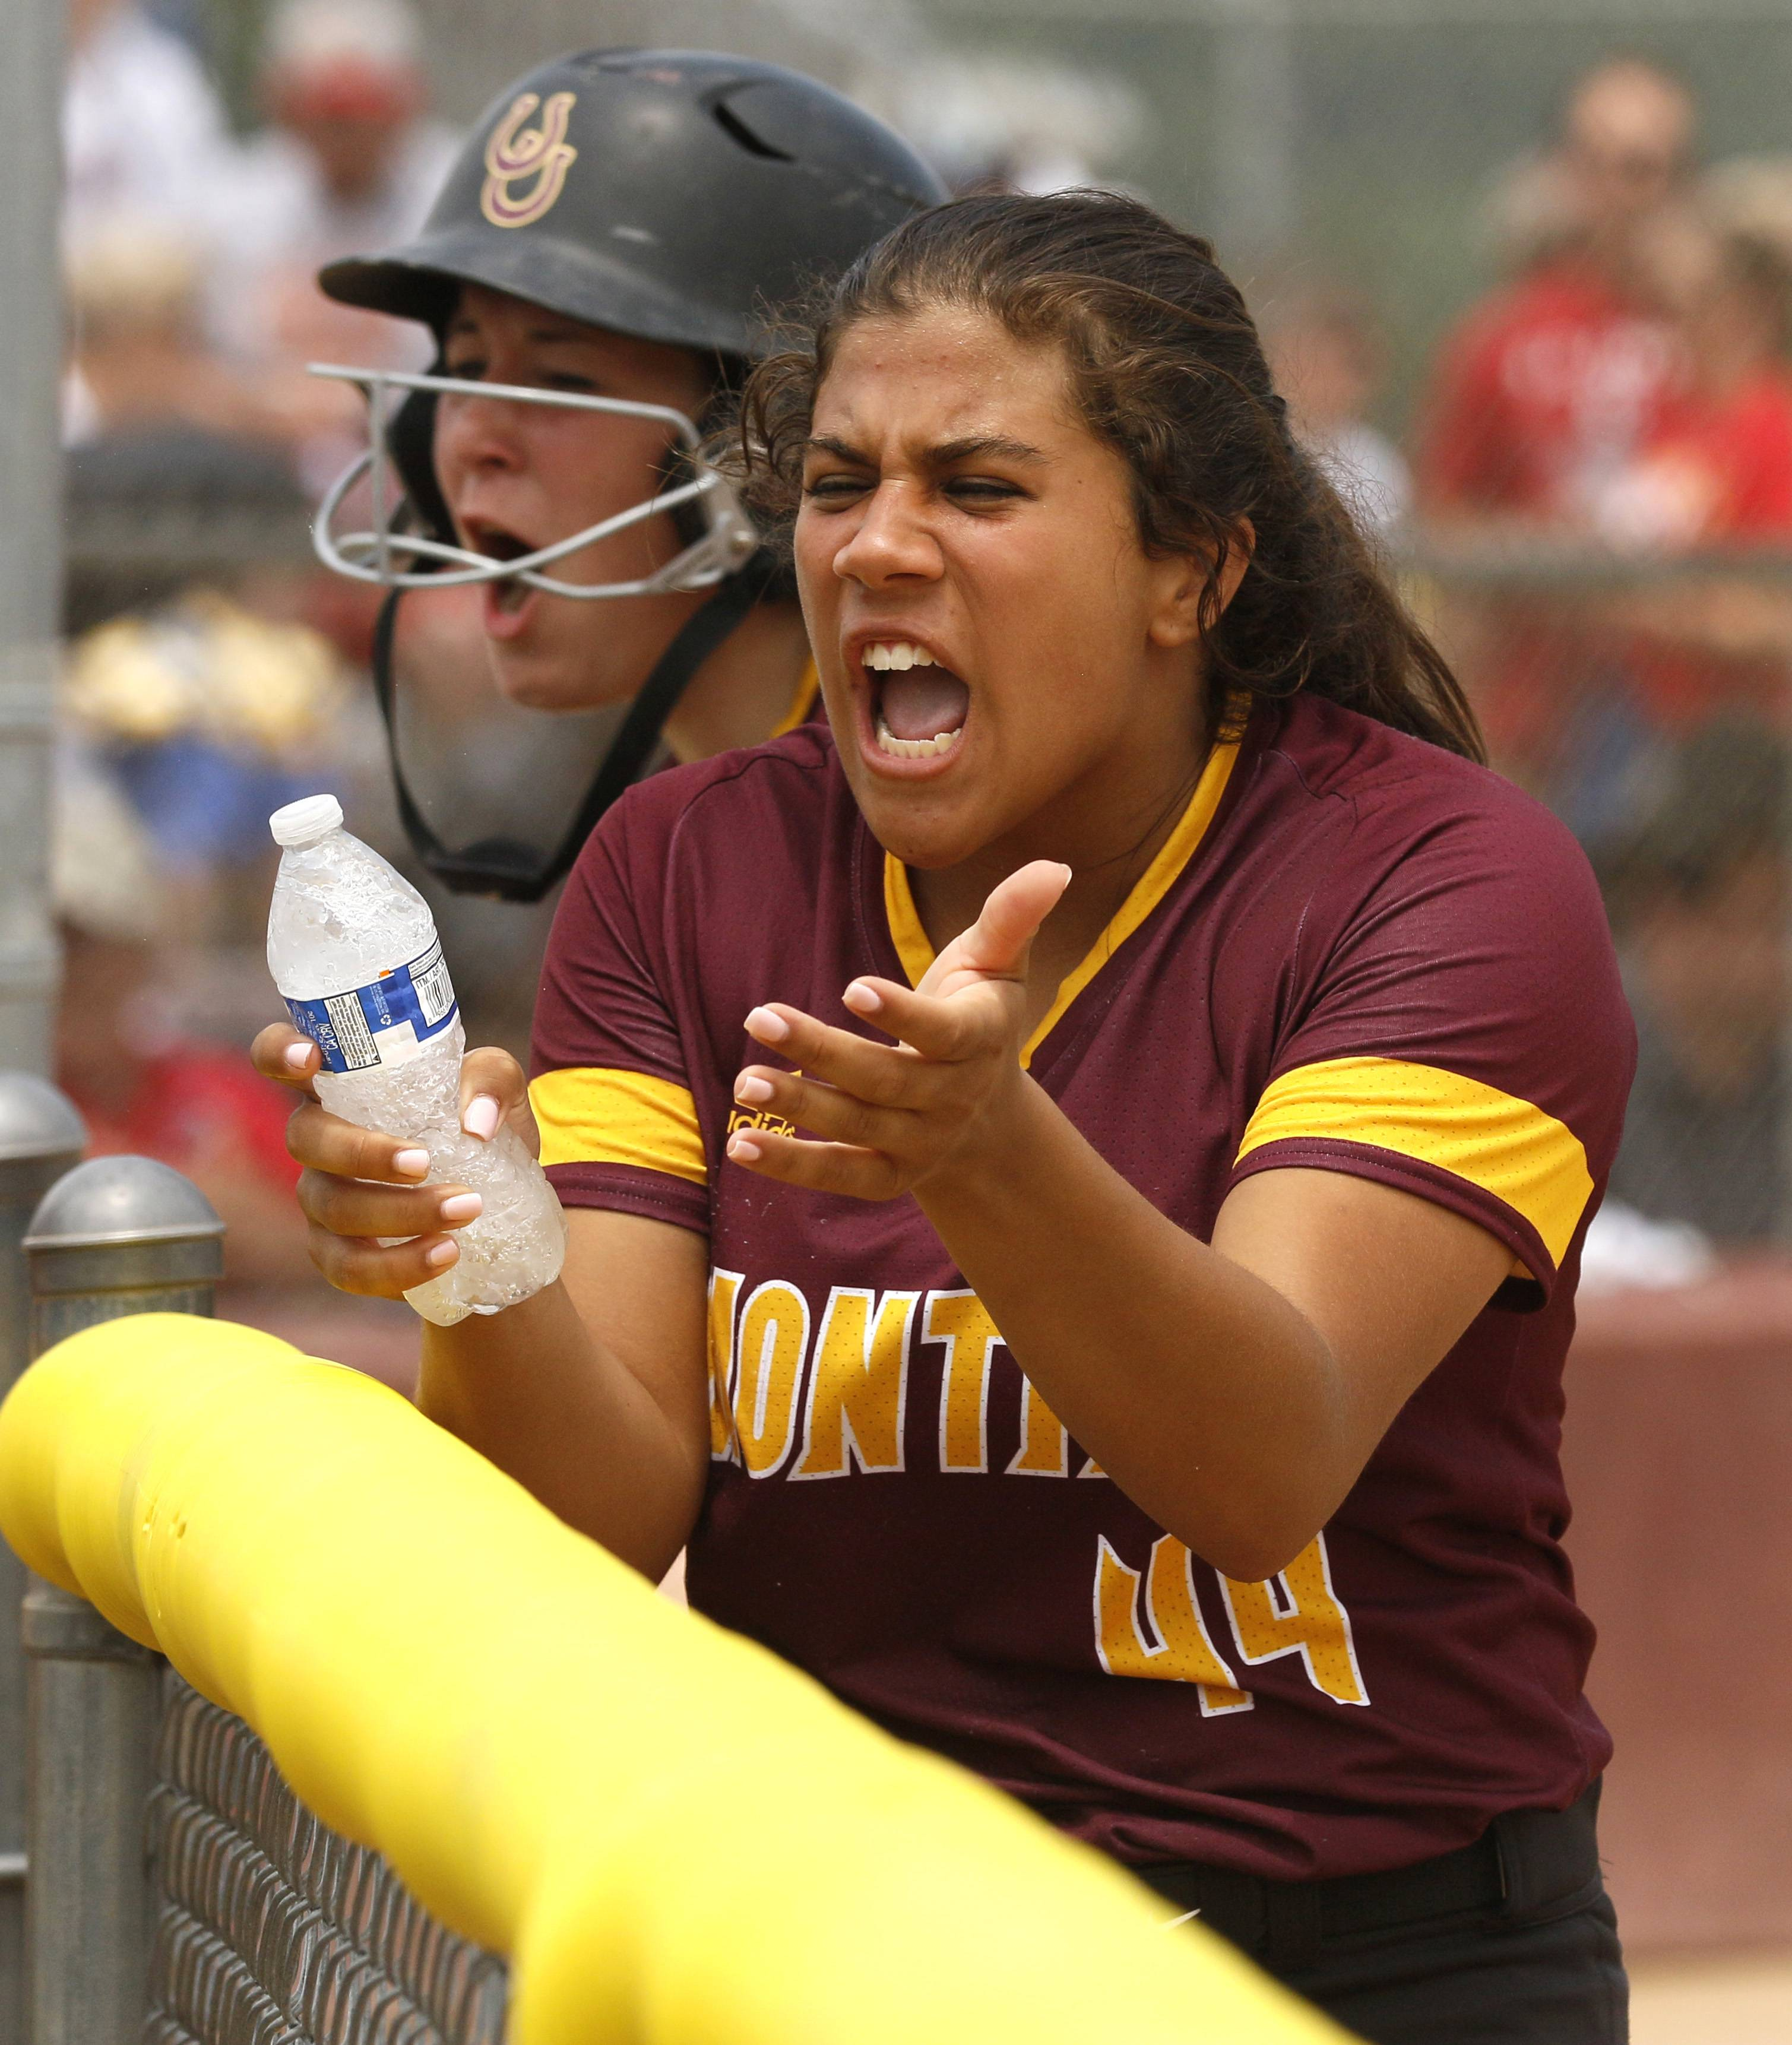 Montini Catholic pitcher Brianna Clifton encourages her team during a 12-run seventh inning against Kaneland.